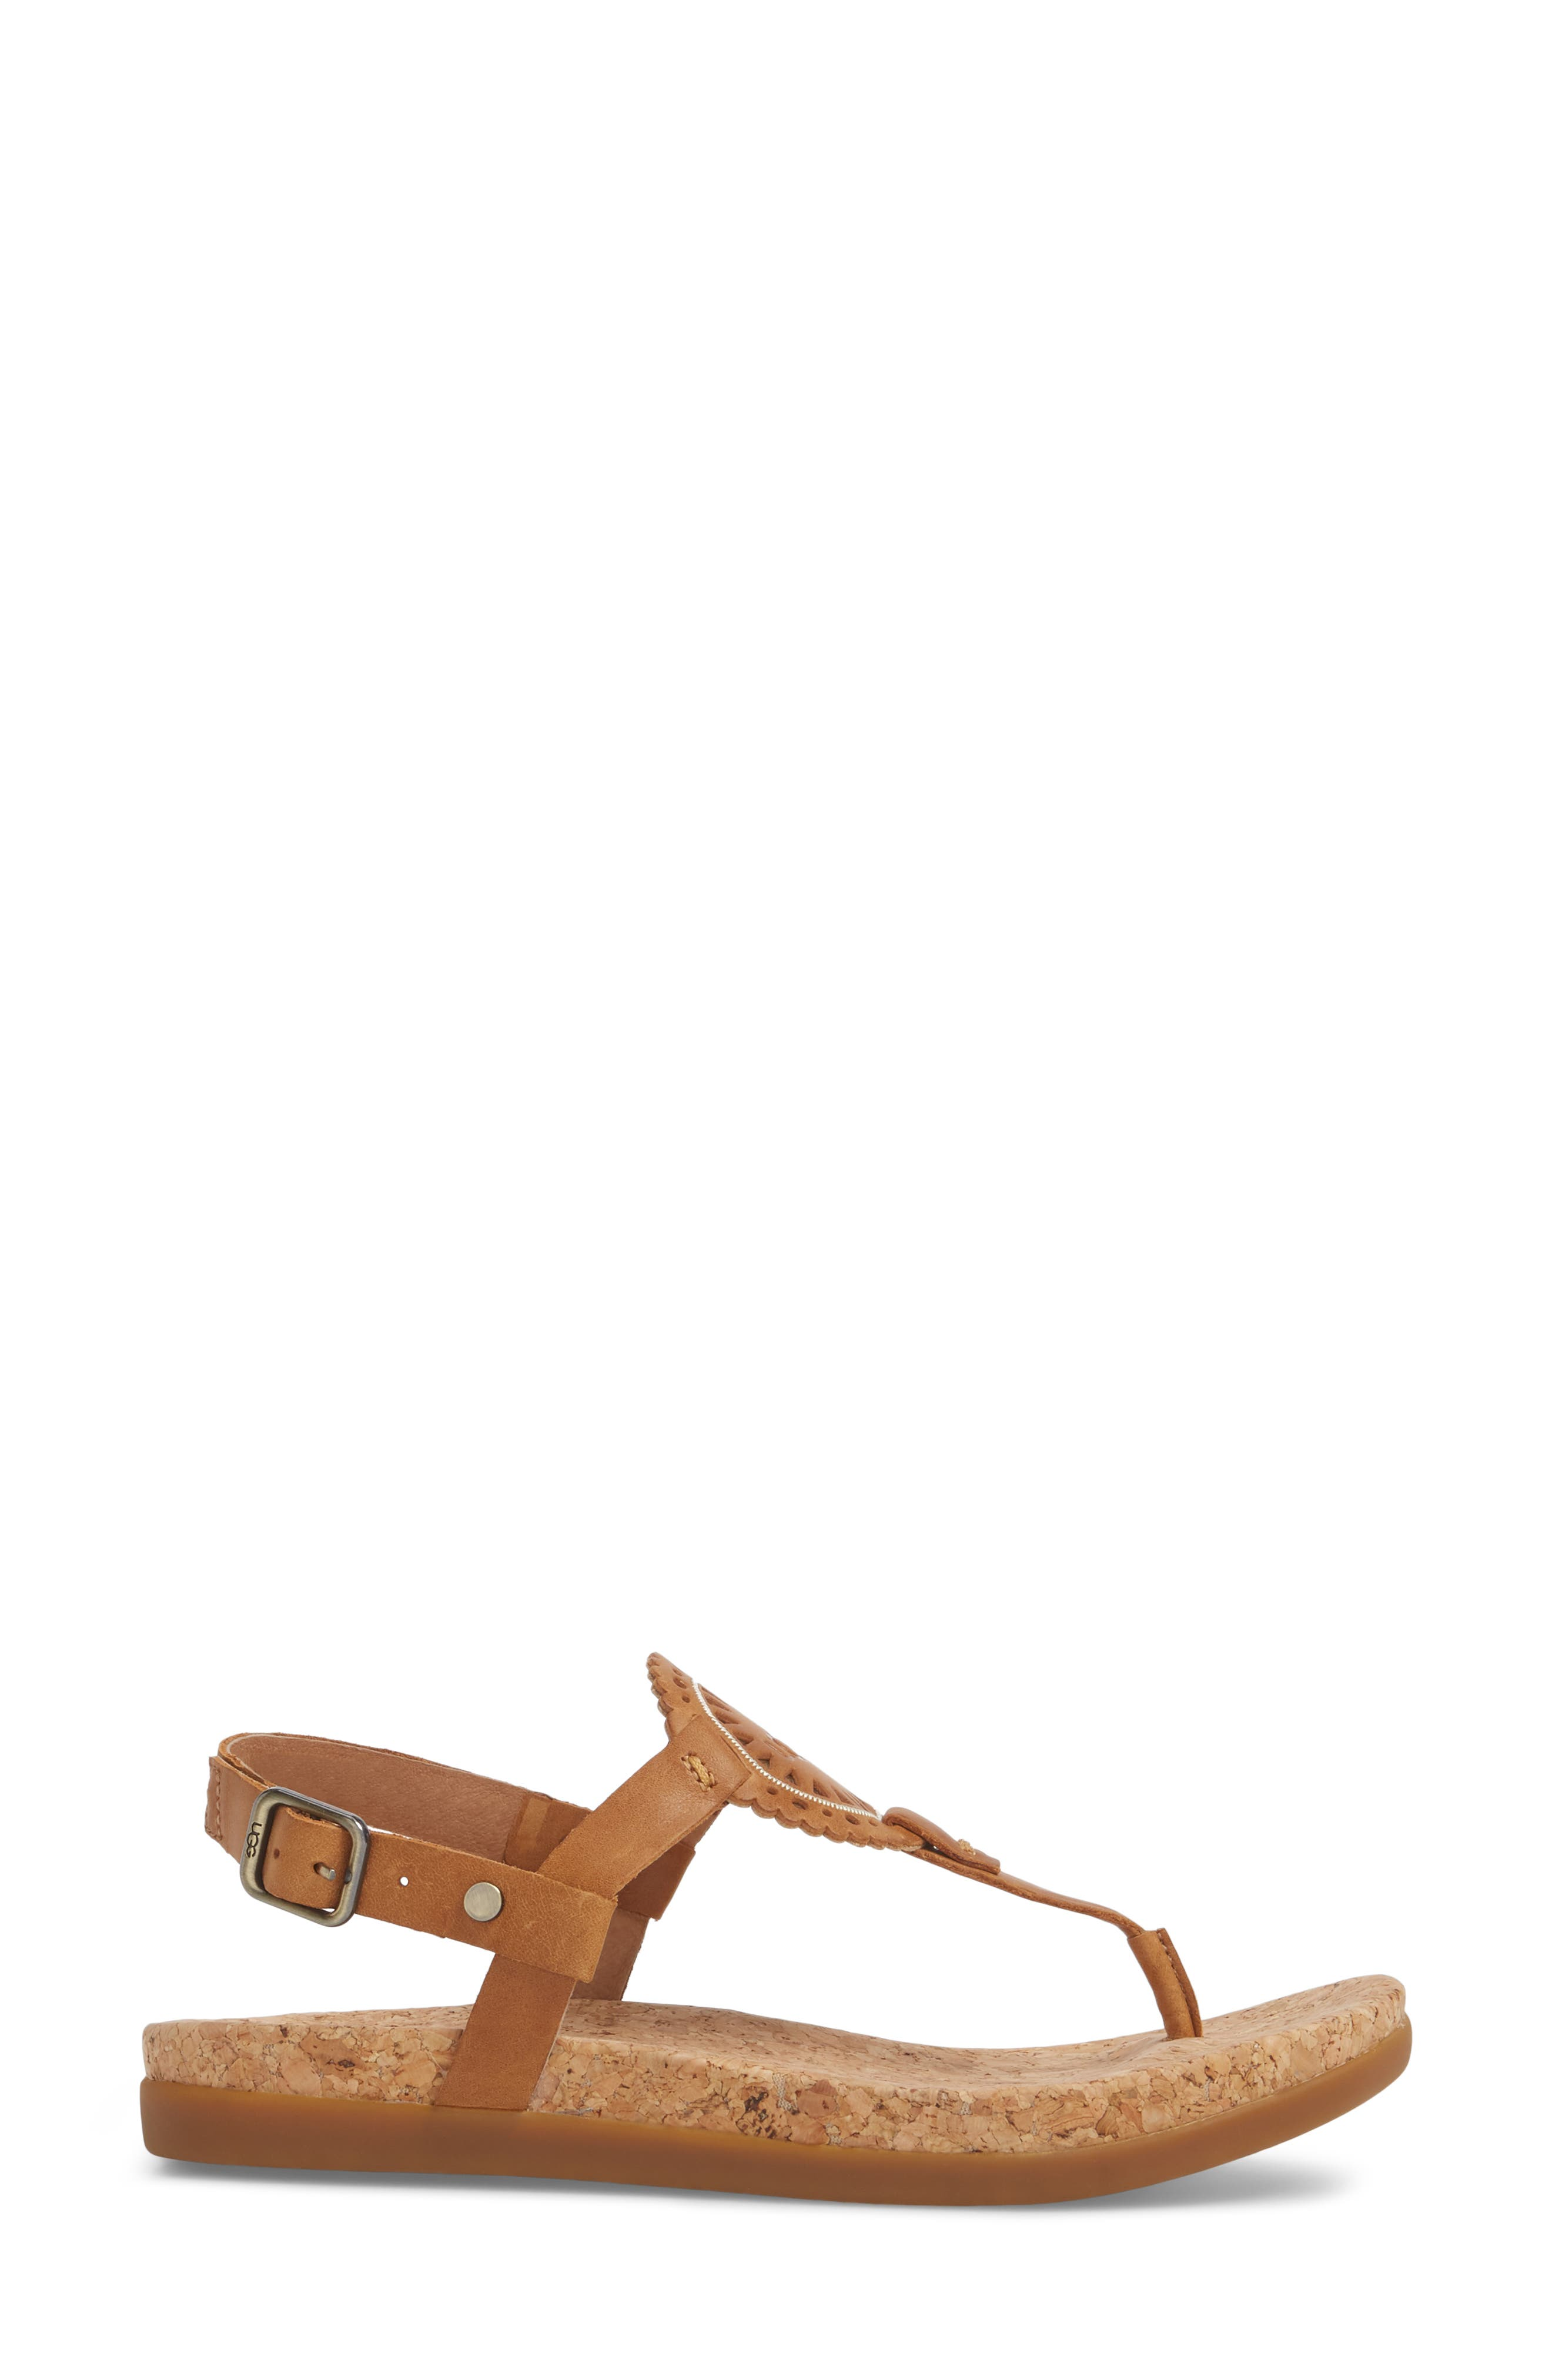 Ayden II T-Strap Sandal,                             Alternate thumbnail 3, color,                             Almond Leather